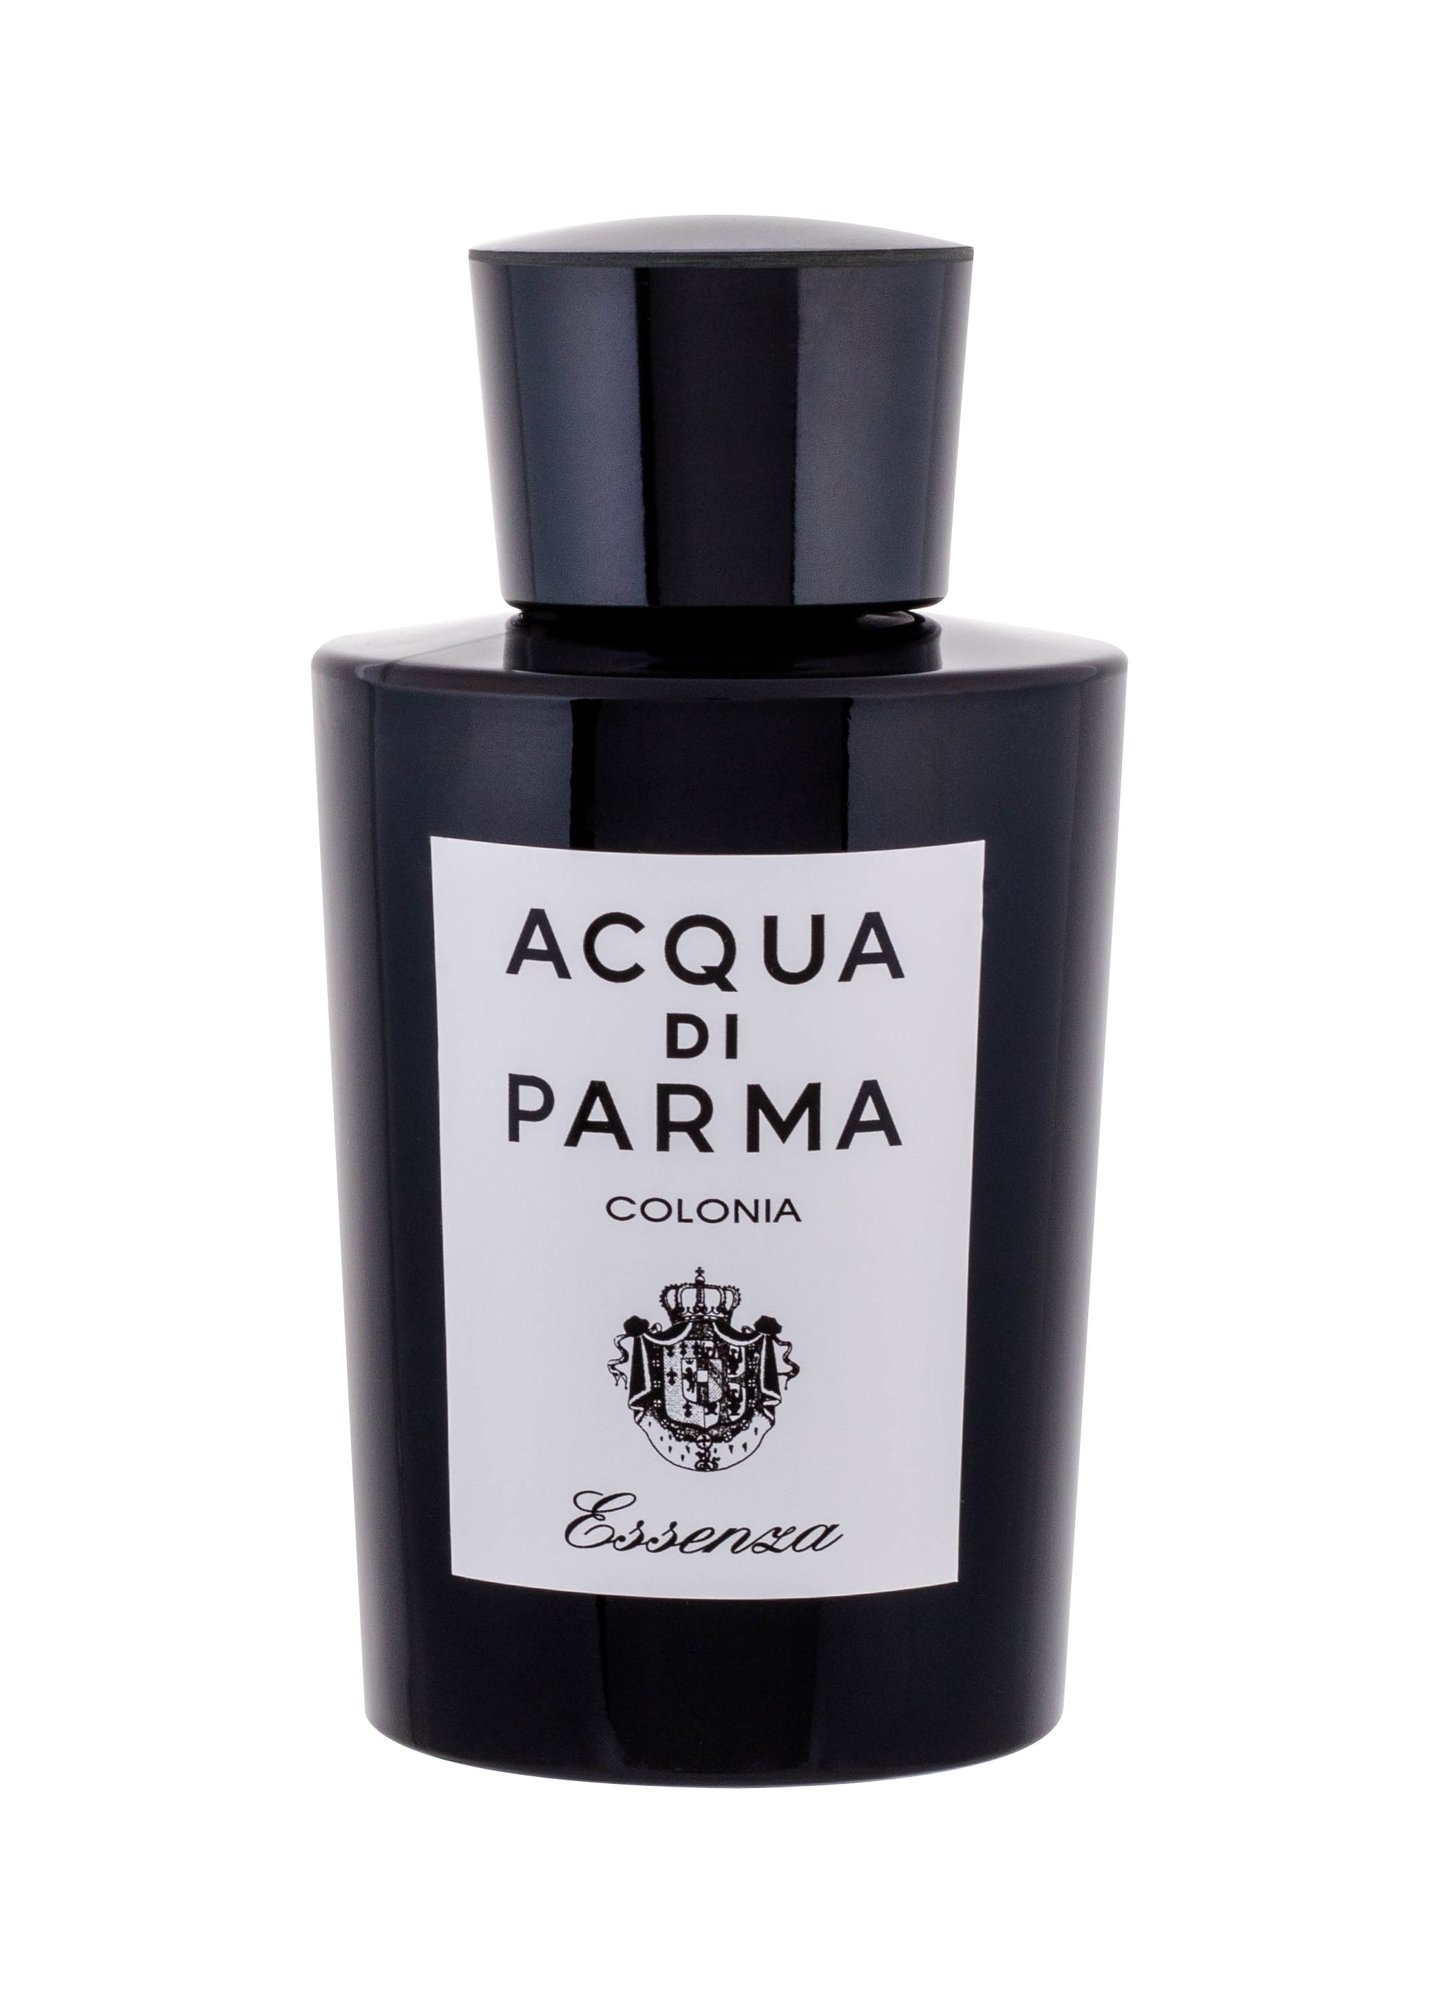 Acqua di Parma Colonia Essenza Cologne 180ml